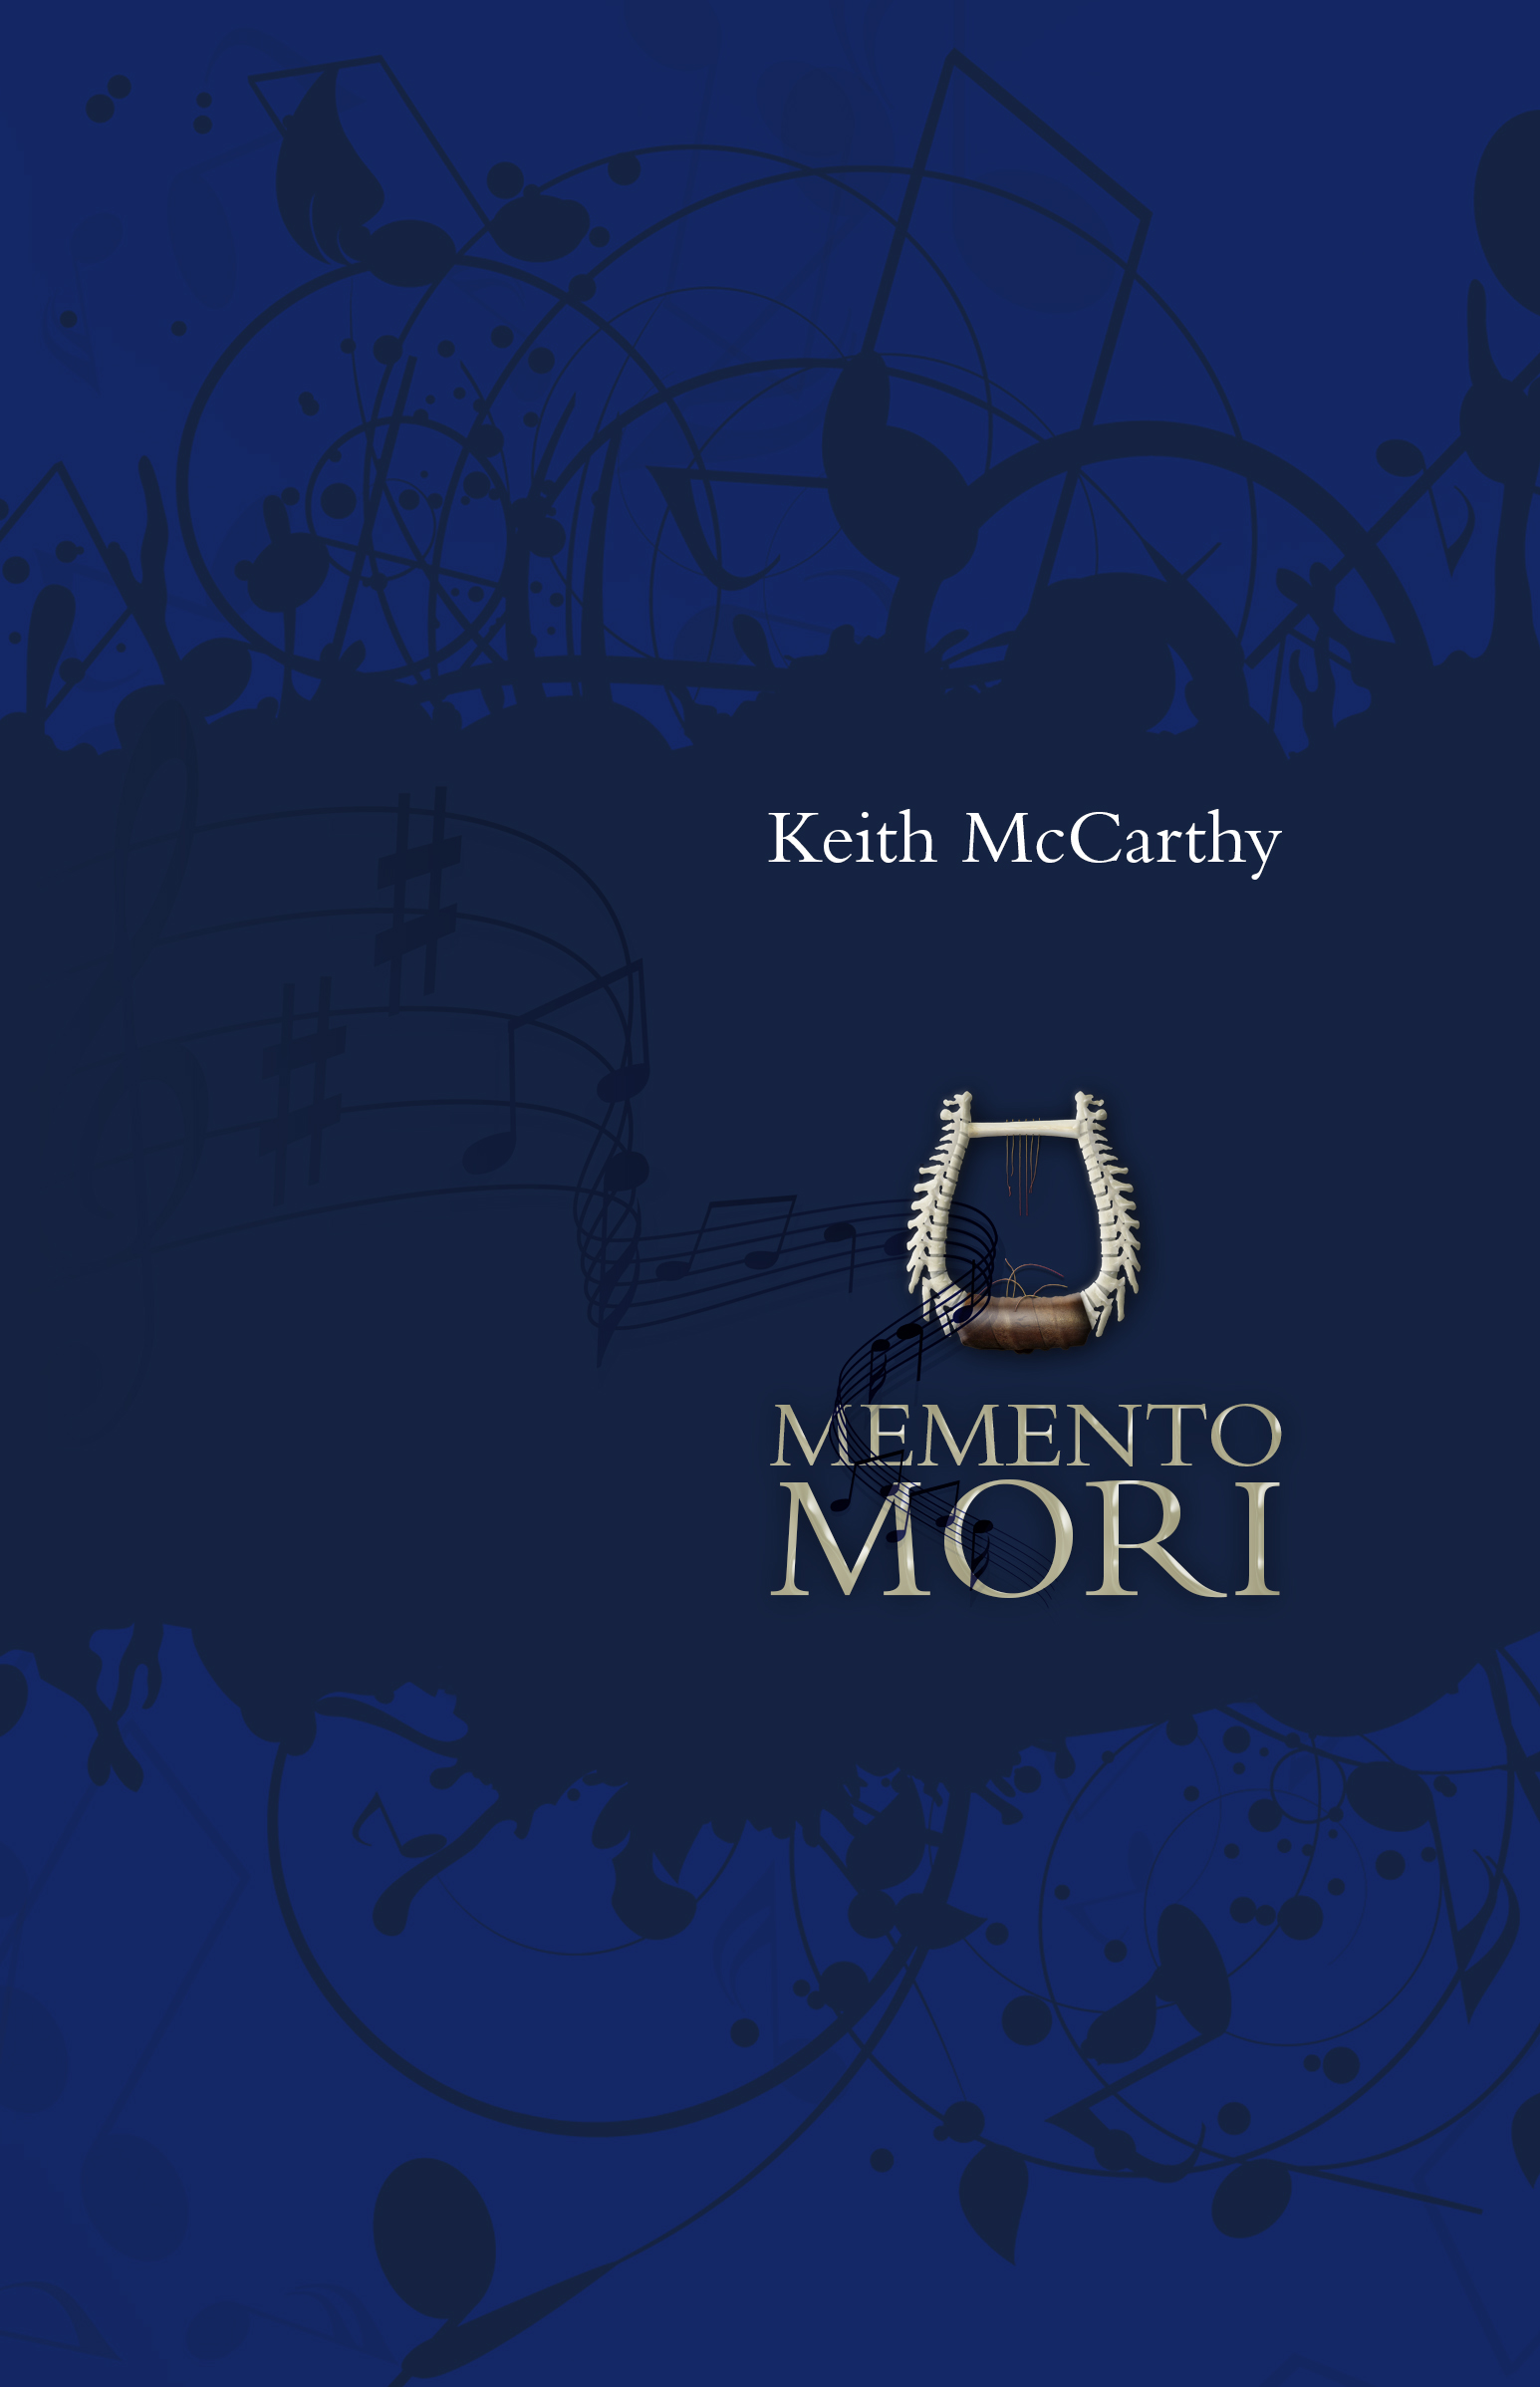 Memento Mori by Keith McCarthy now available